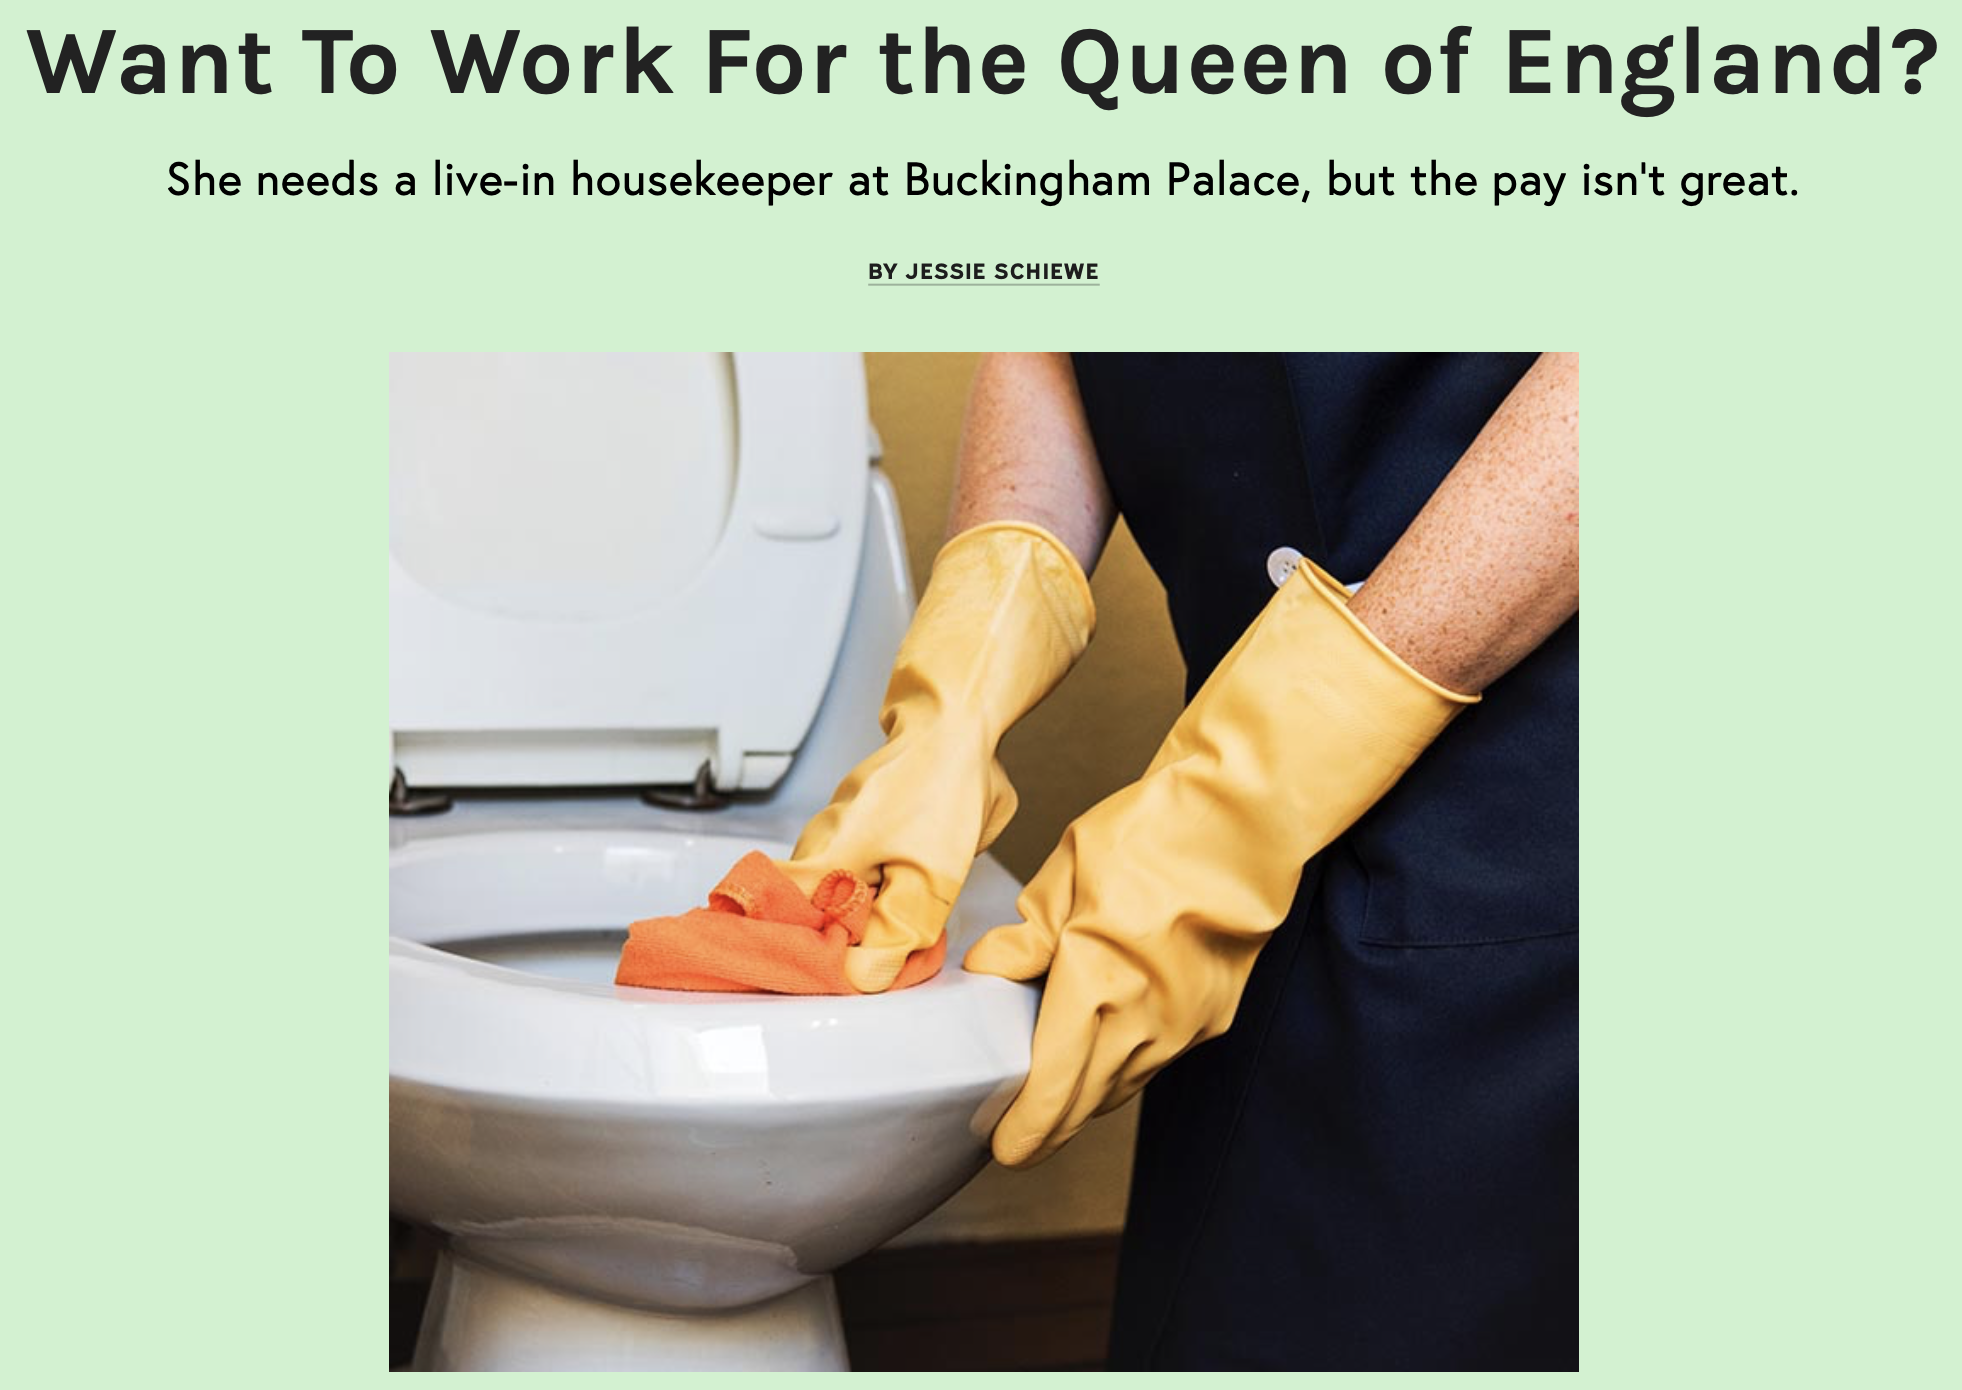 Want To Work For the Queen of England?